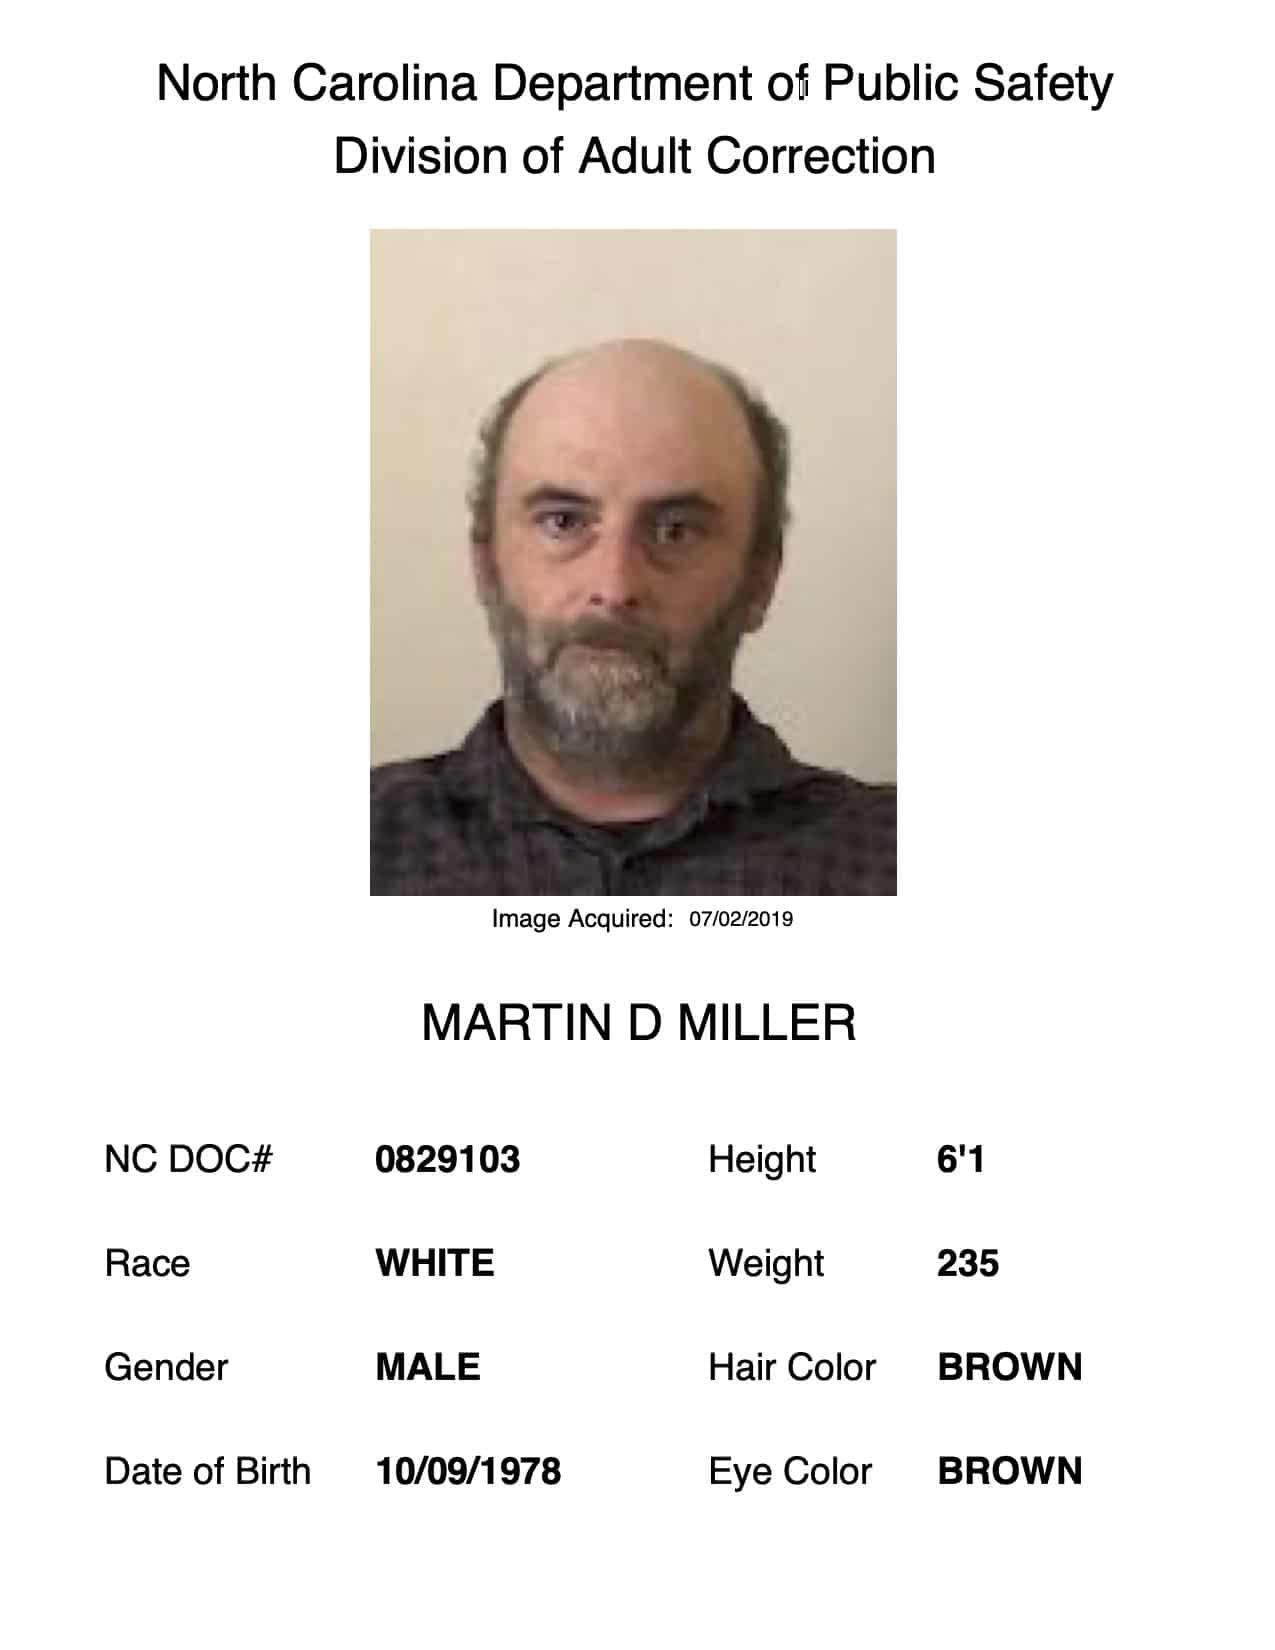 Crime Stoppers & NCDPS seek help in locating Martin D Miller